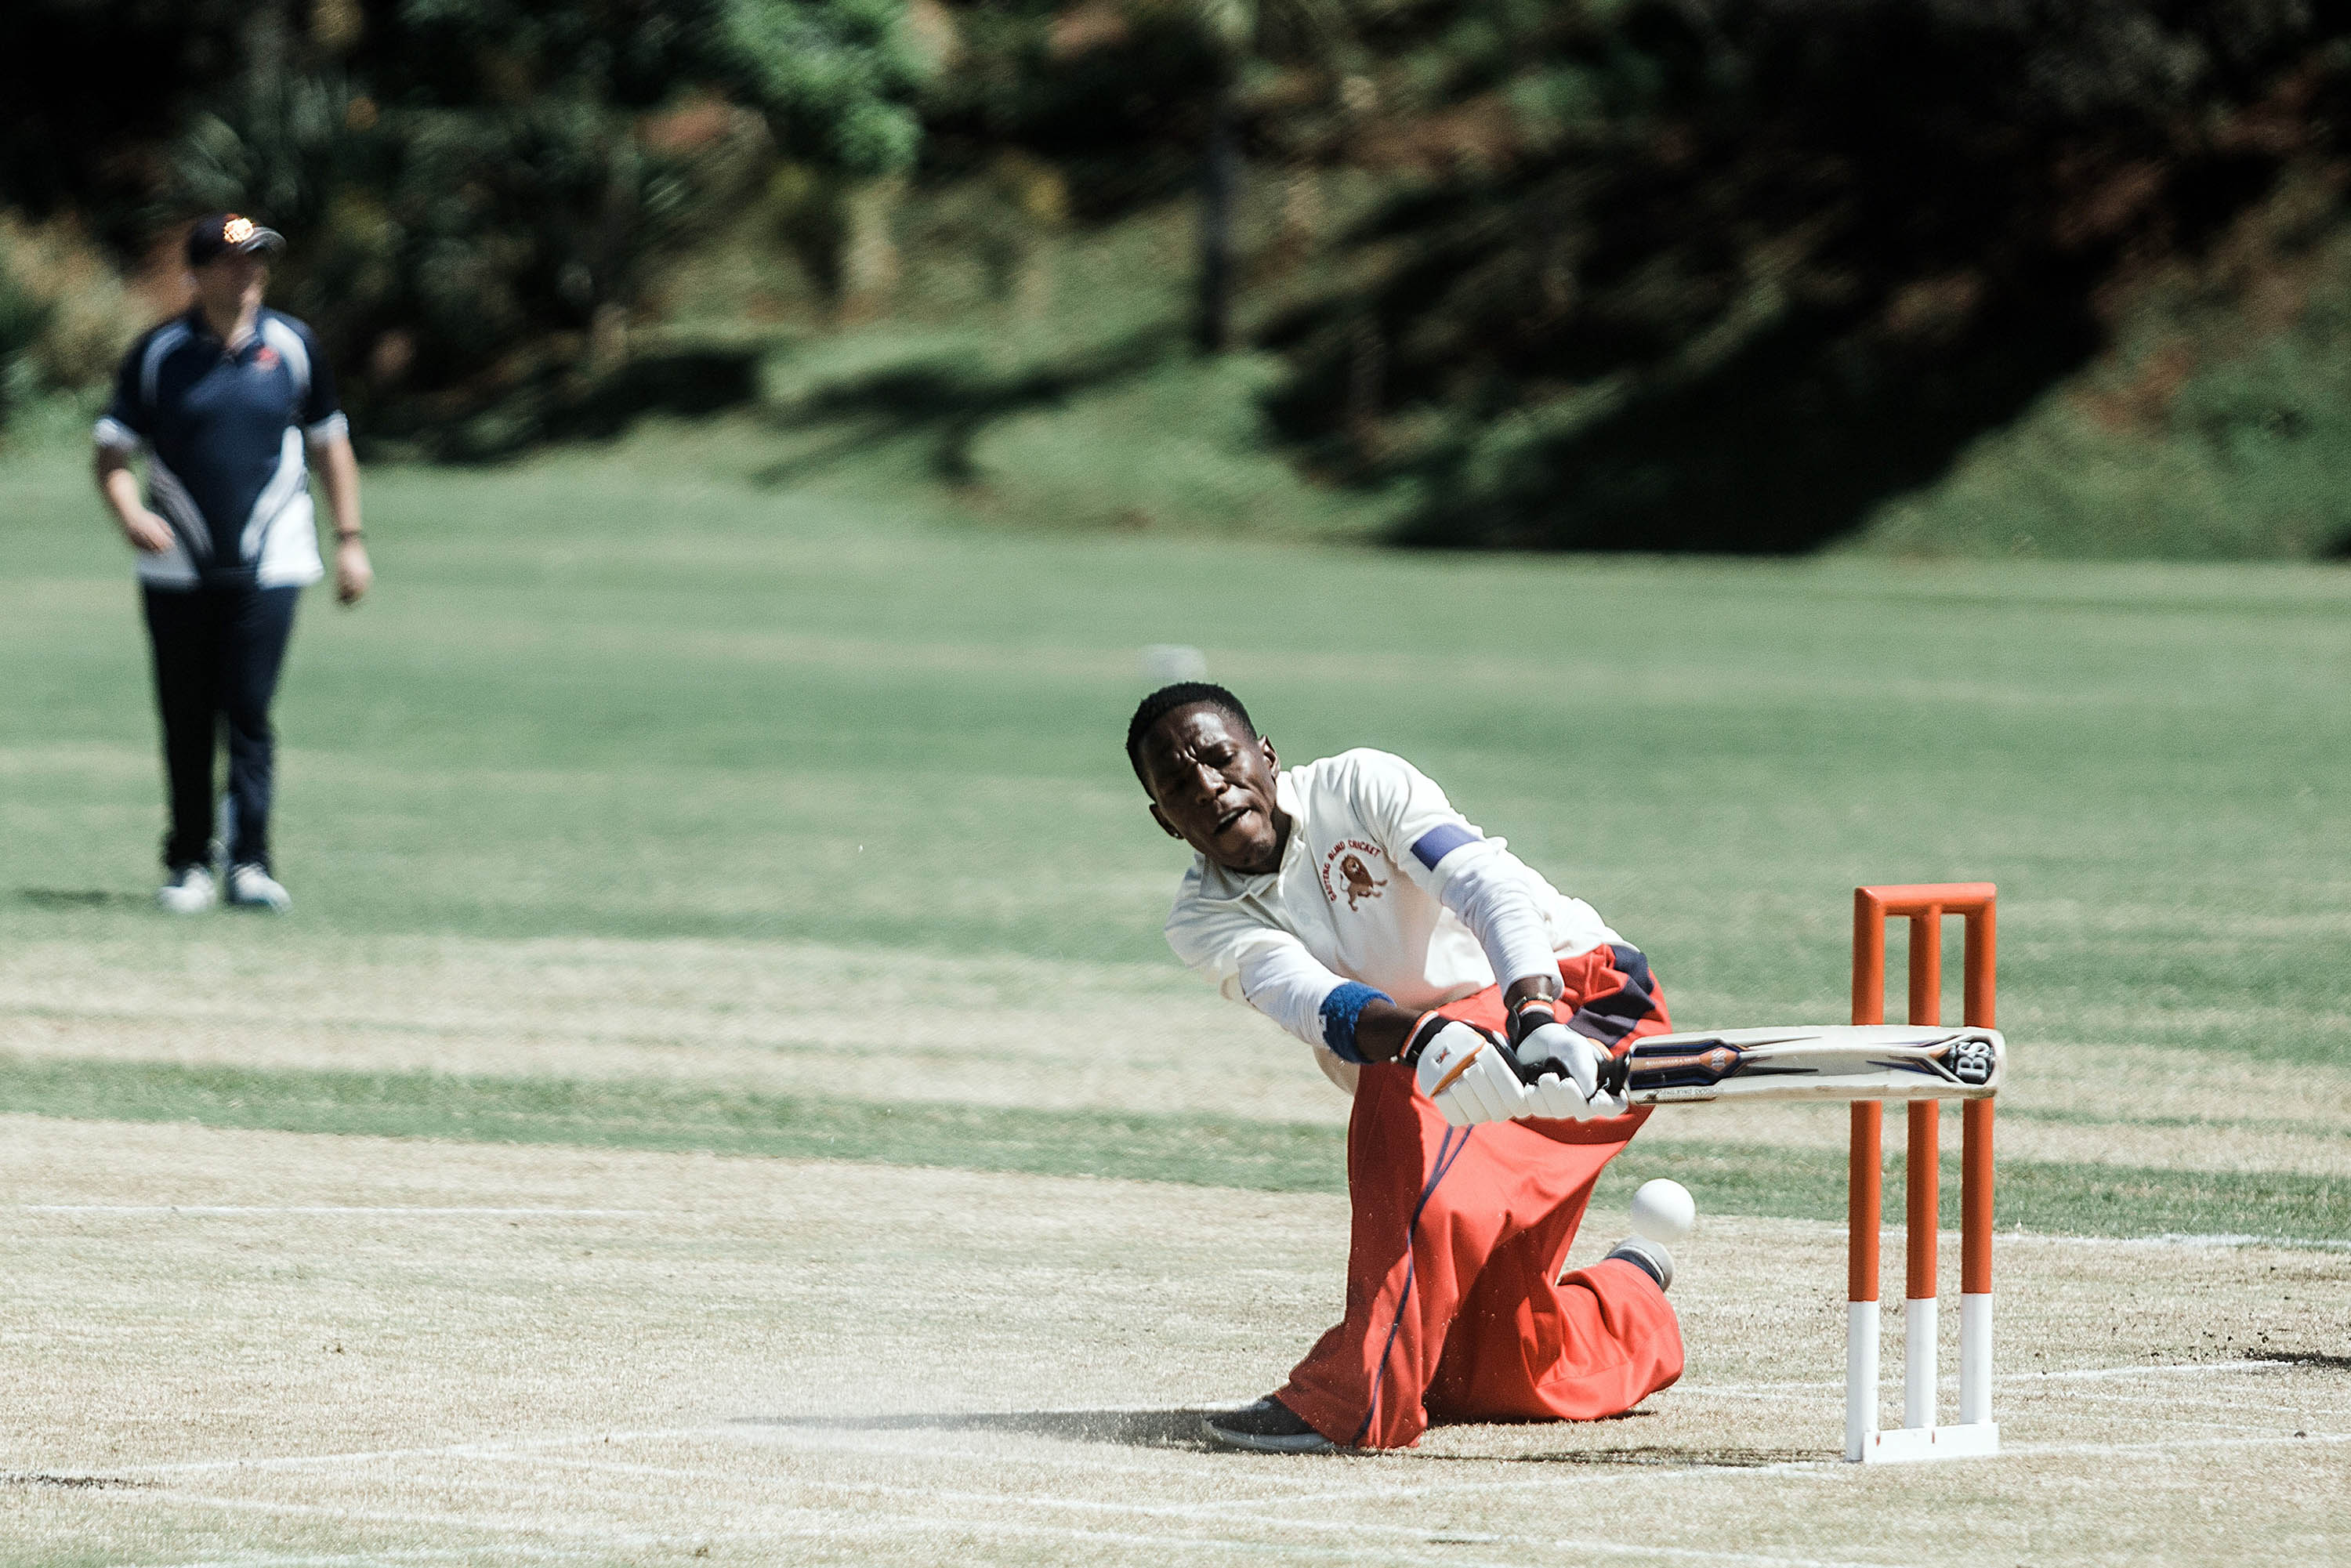 25 September 2019: A batsman from Central Gauteng in red hits the ball during a game against Northern Gauteng.